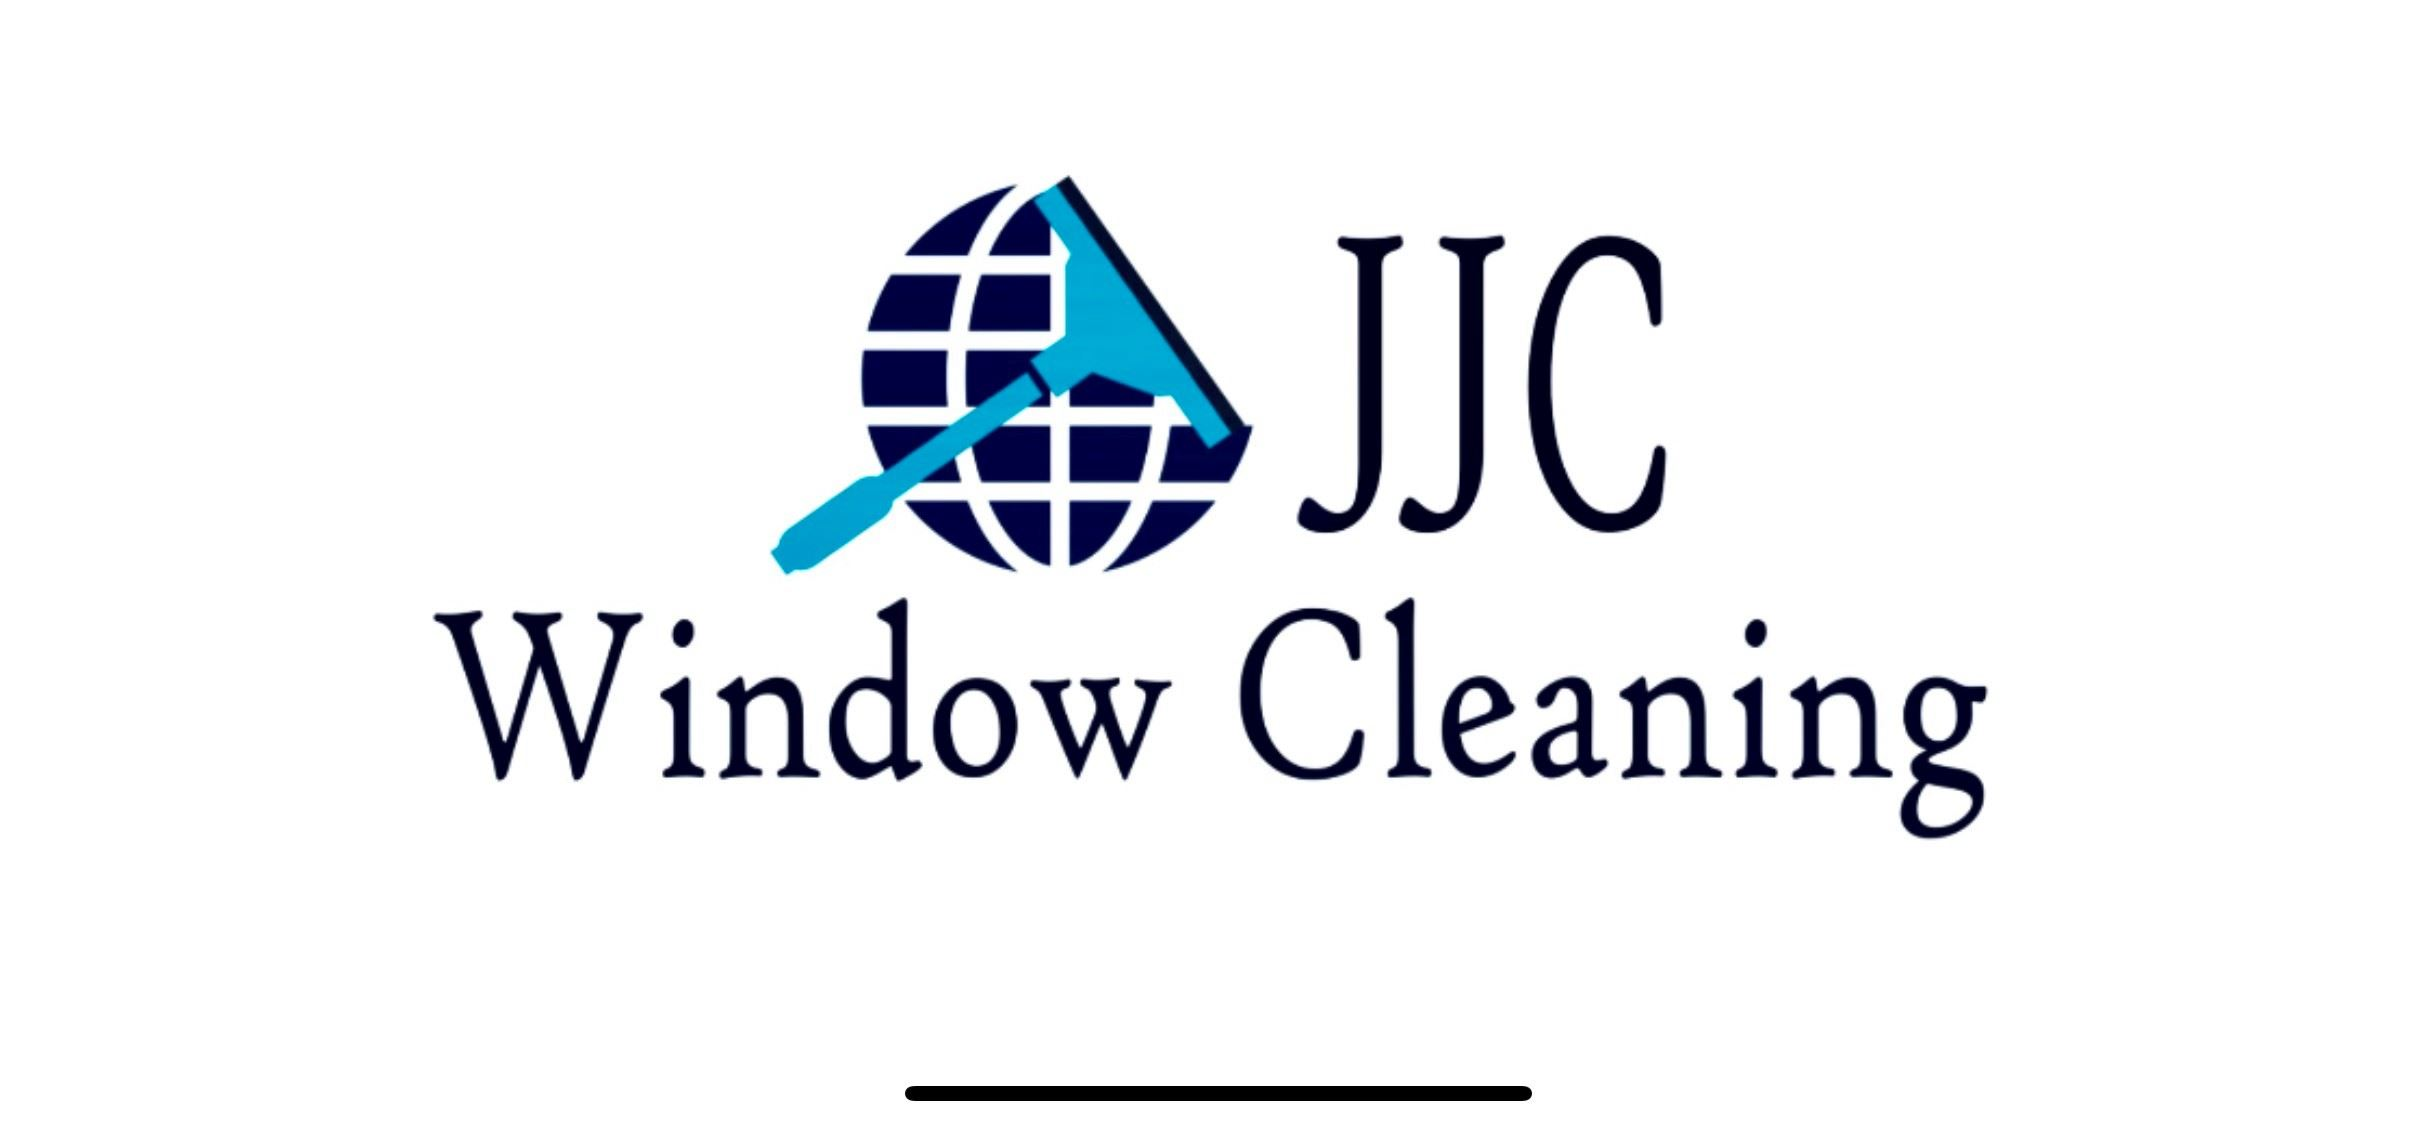 JJC Window Cleaning Logo - words, world and squeegee